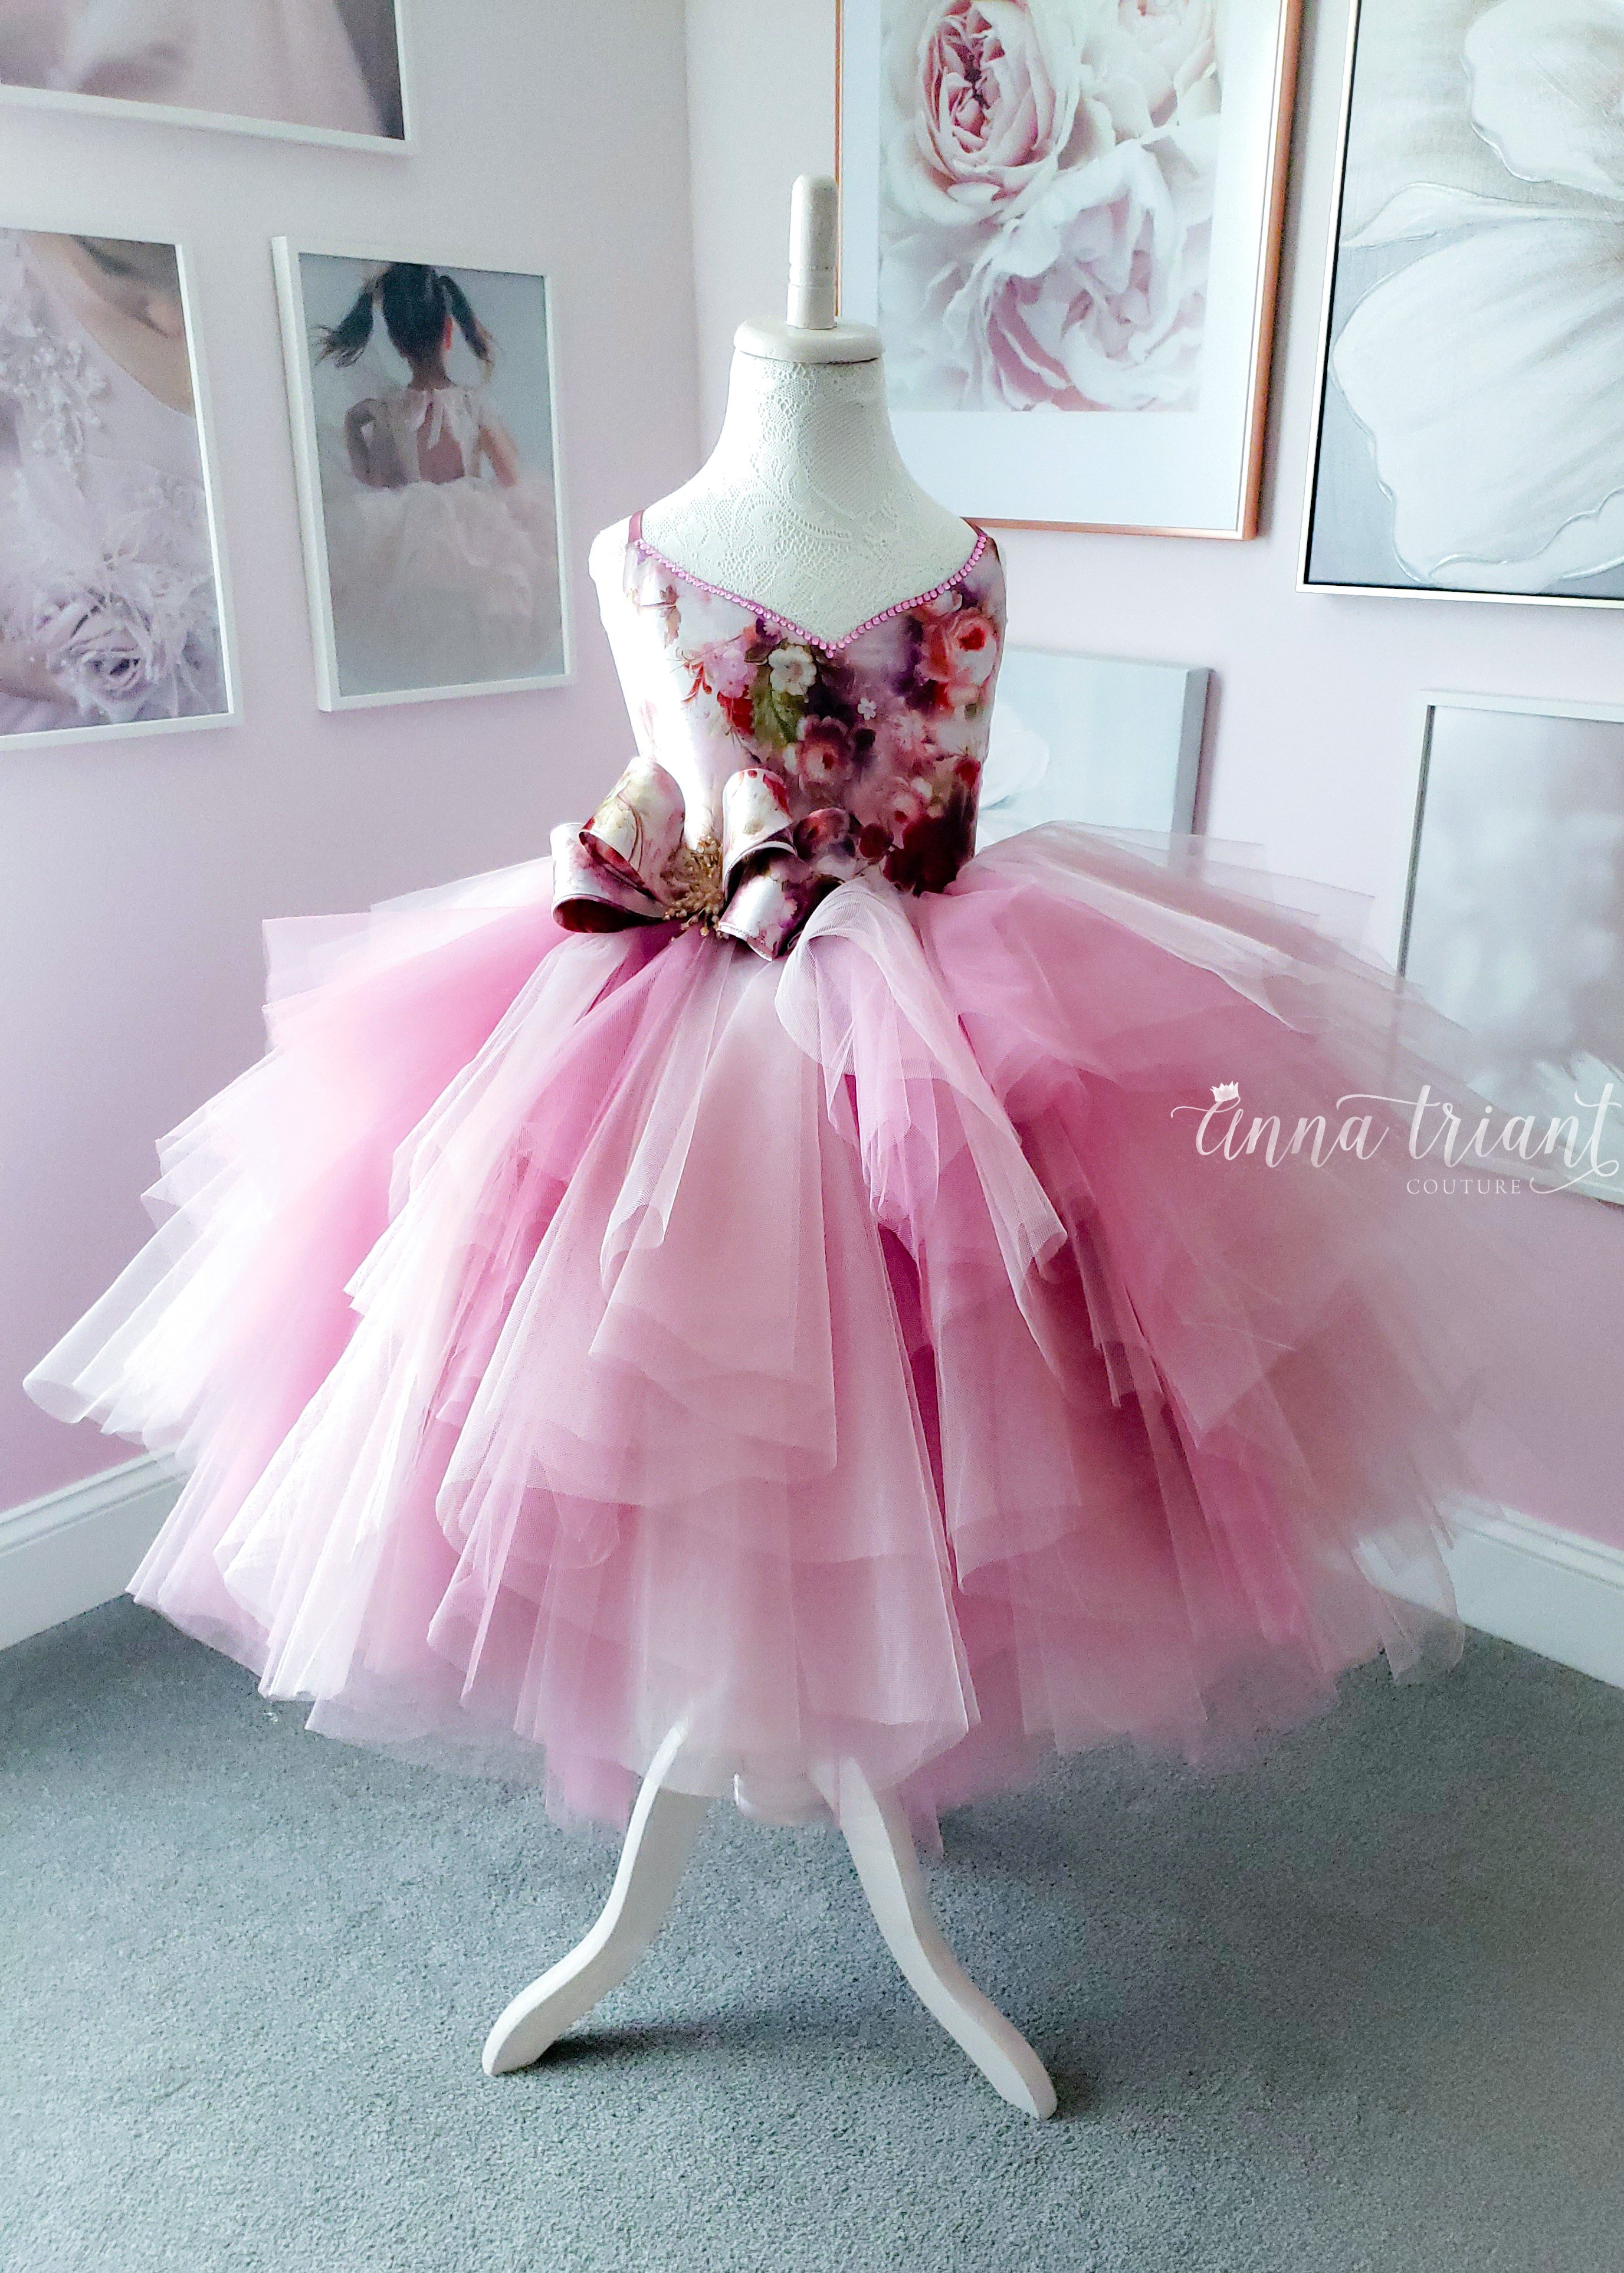 Silk Tutu Dress w/ Bow, Simply Anna, size 6-8